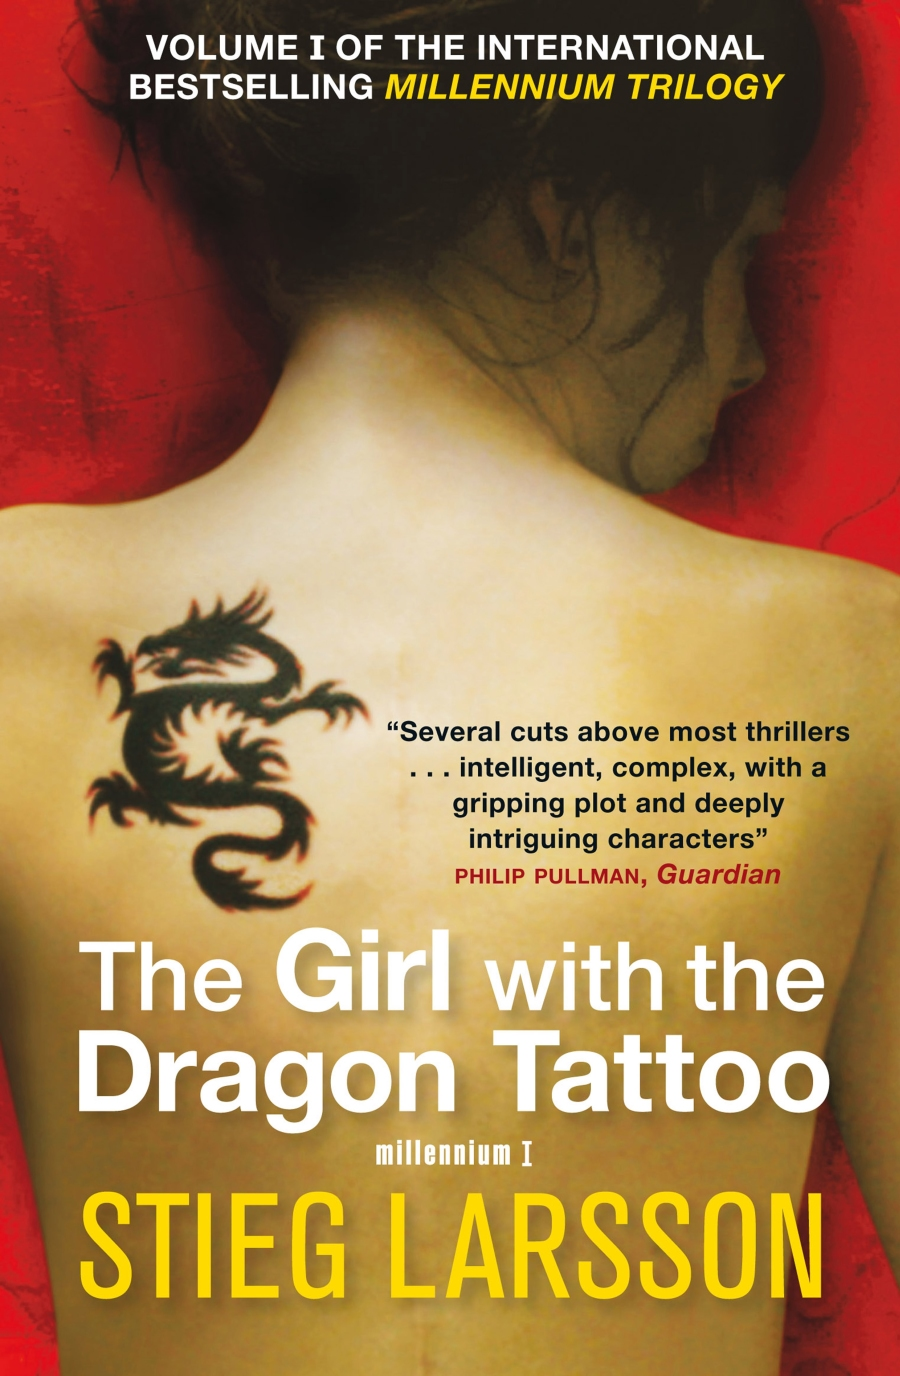 Cover Art for The Girl with the Dragon Tattoo, ISBN: 9781847245458